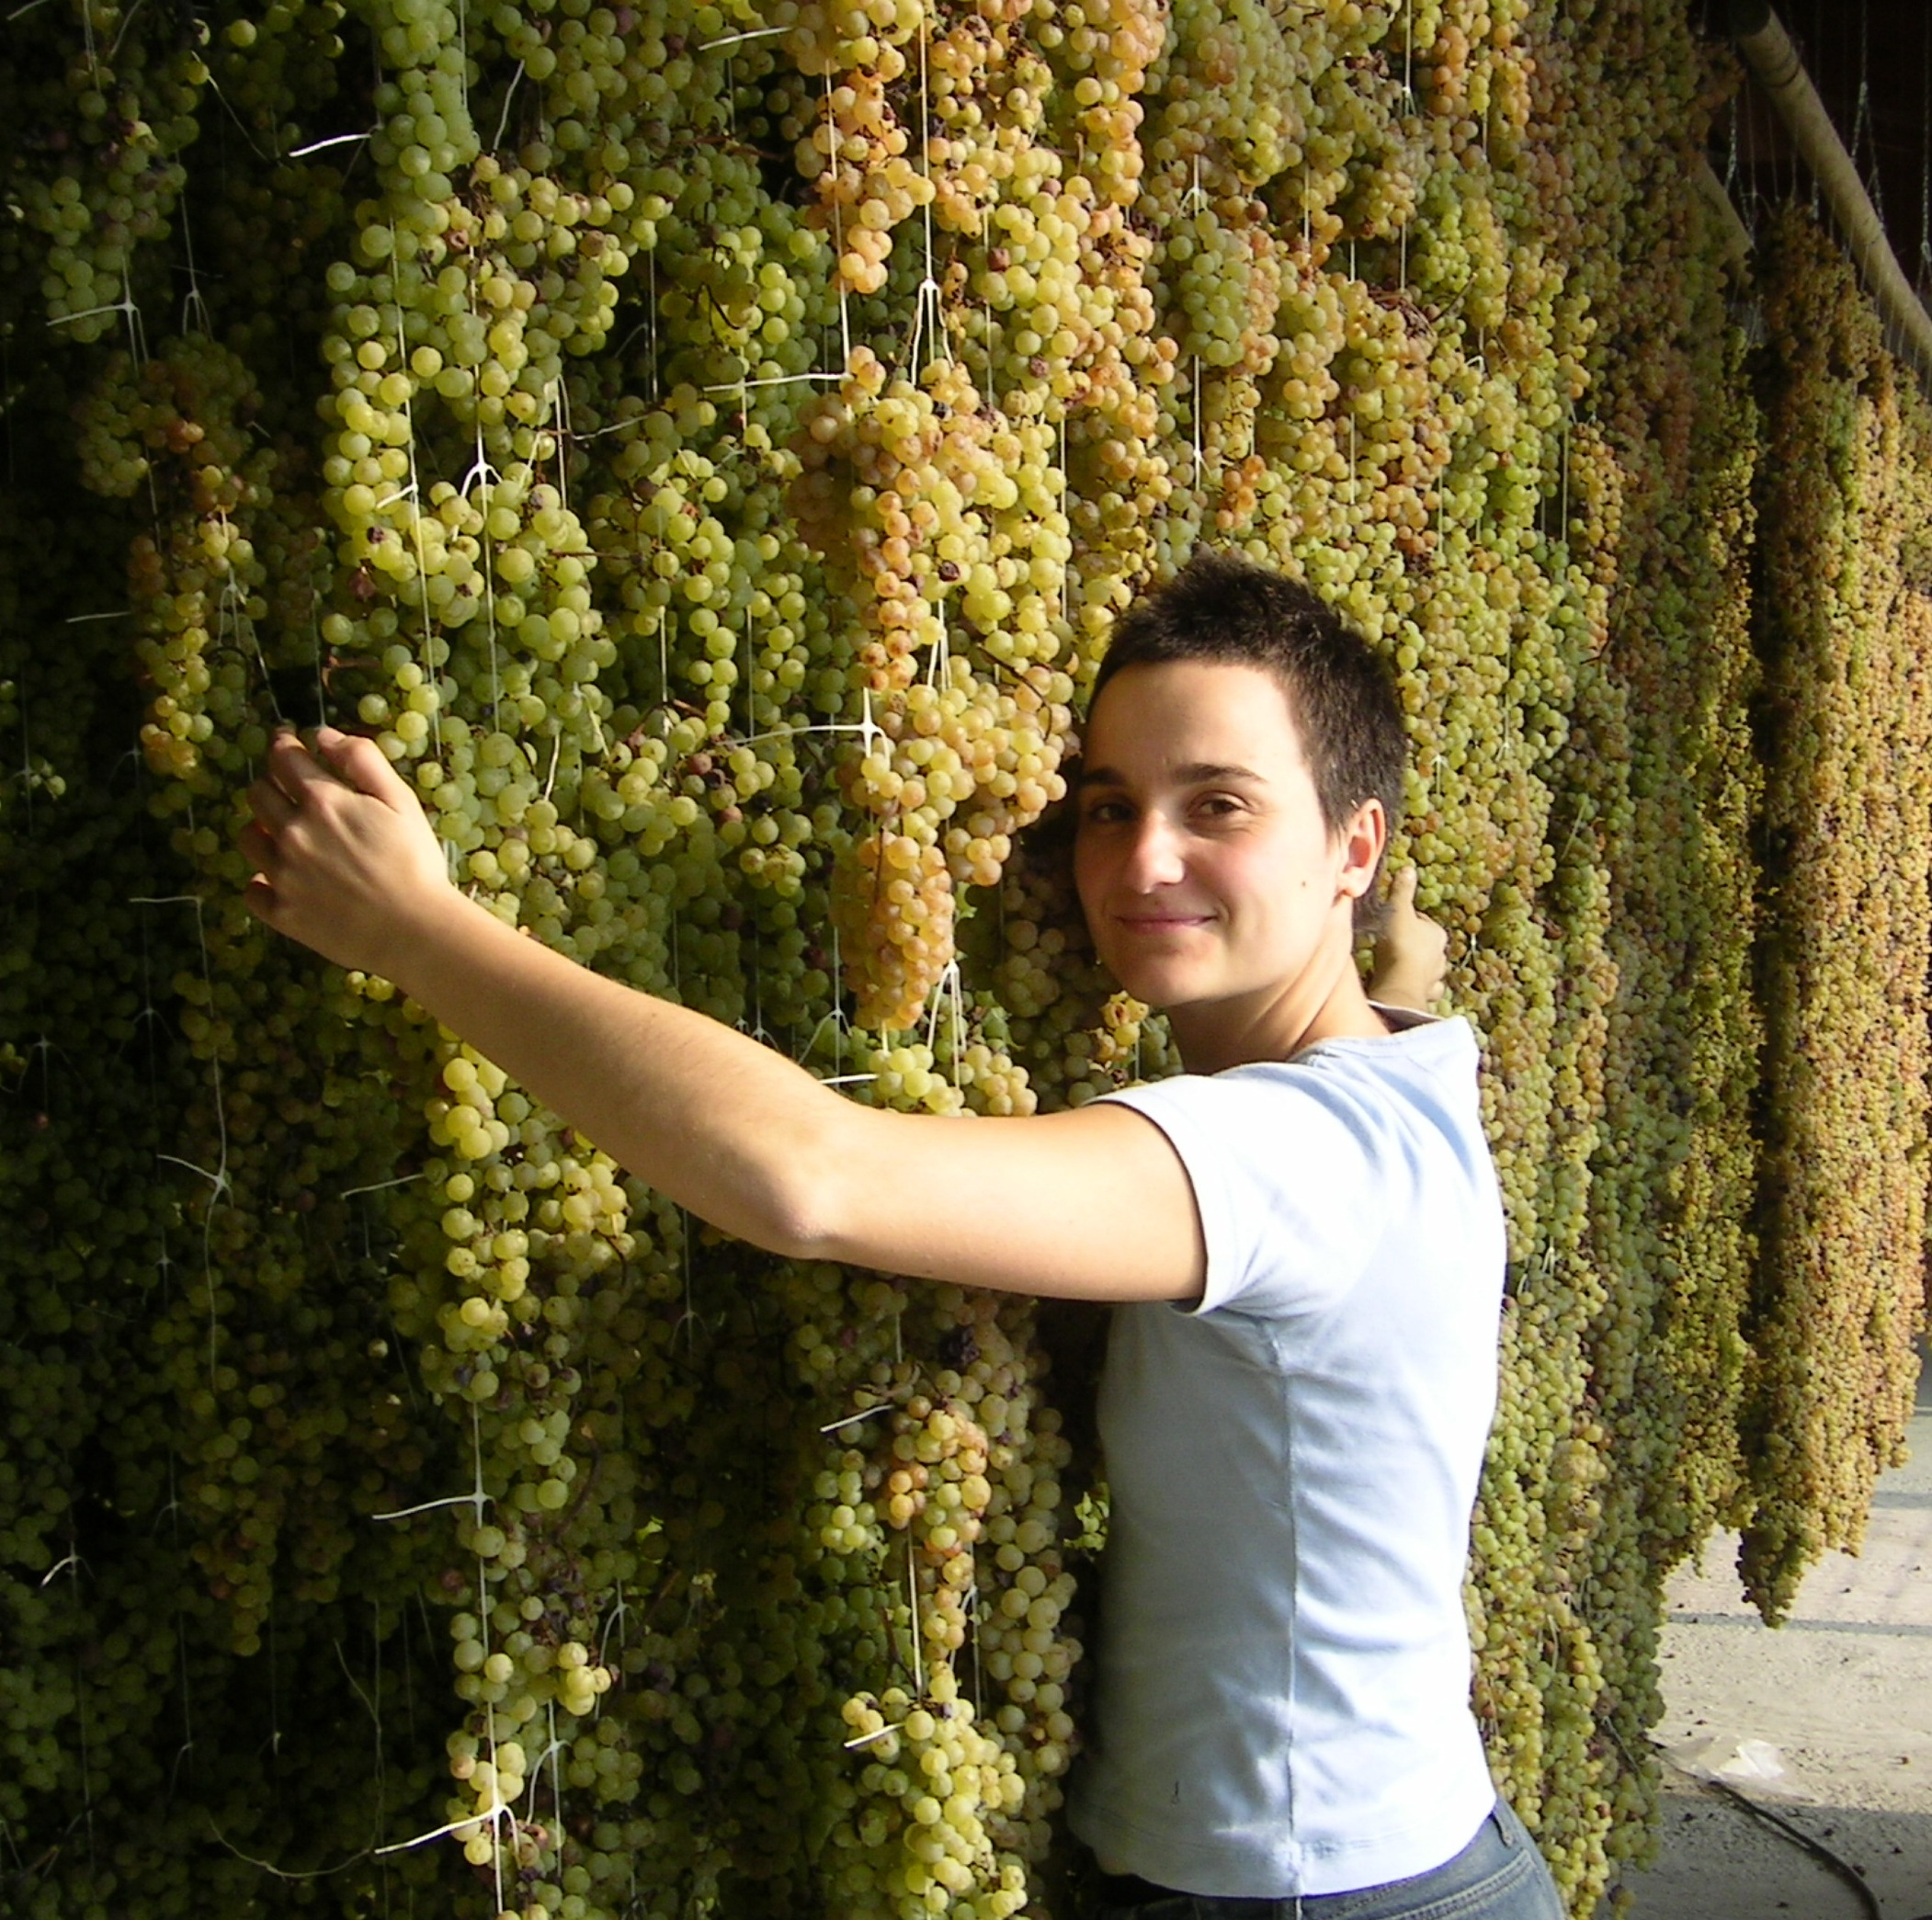 Chiara with the drying grapes